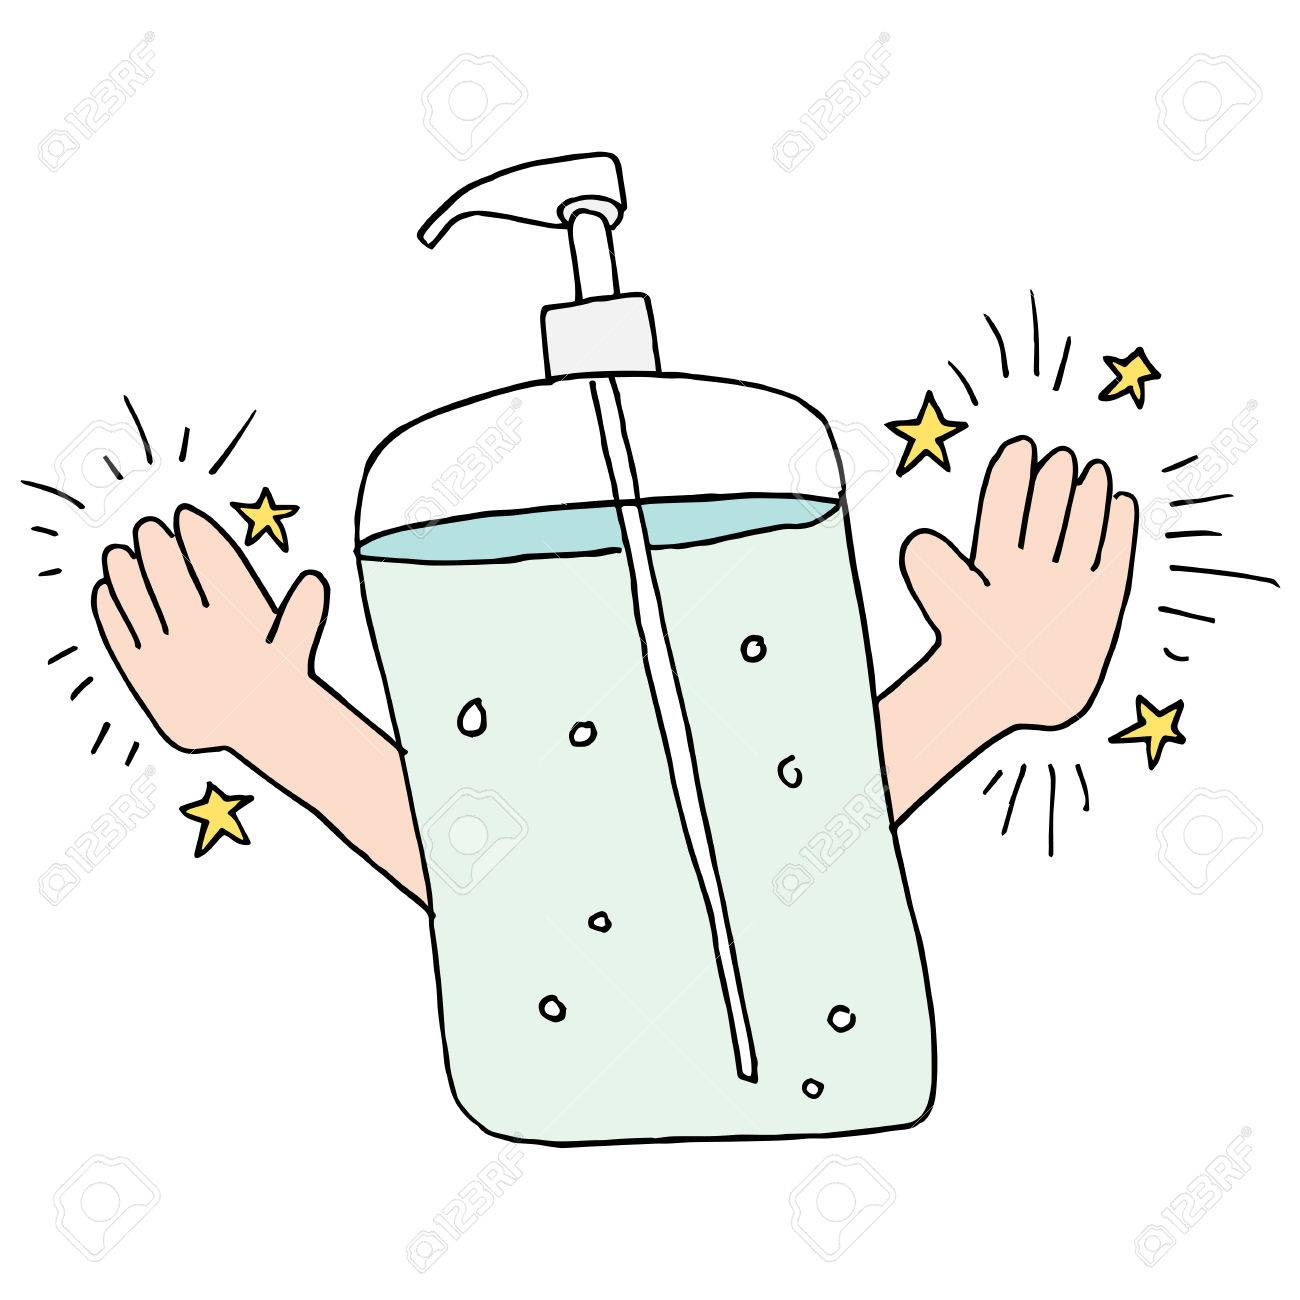 an image of a clean hands using hand sanitizer royalty free